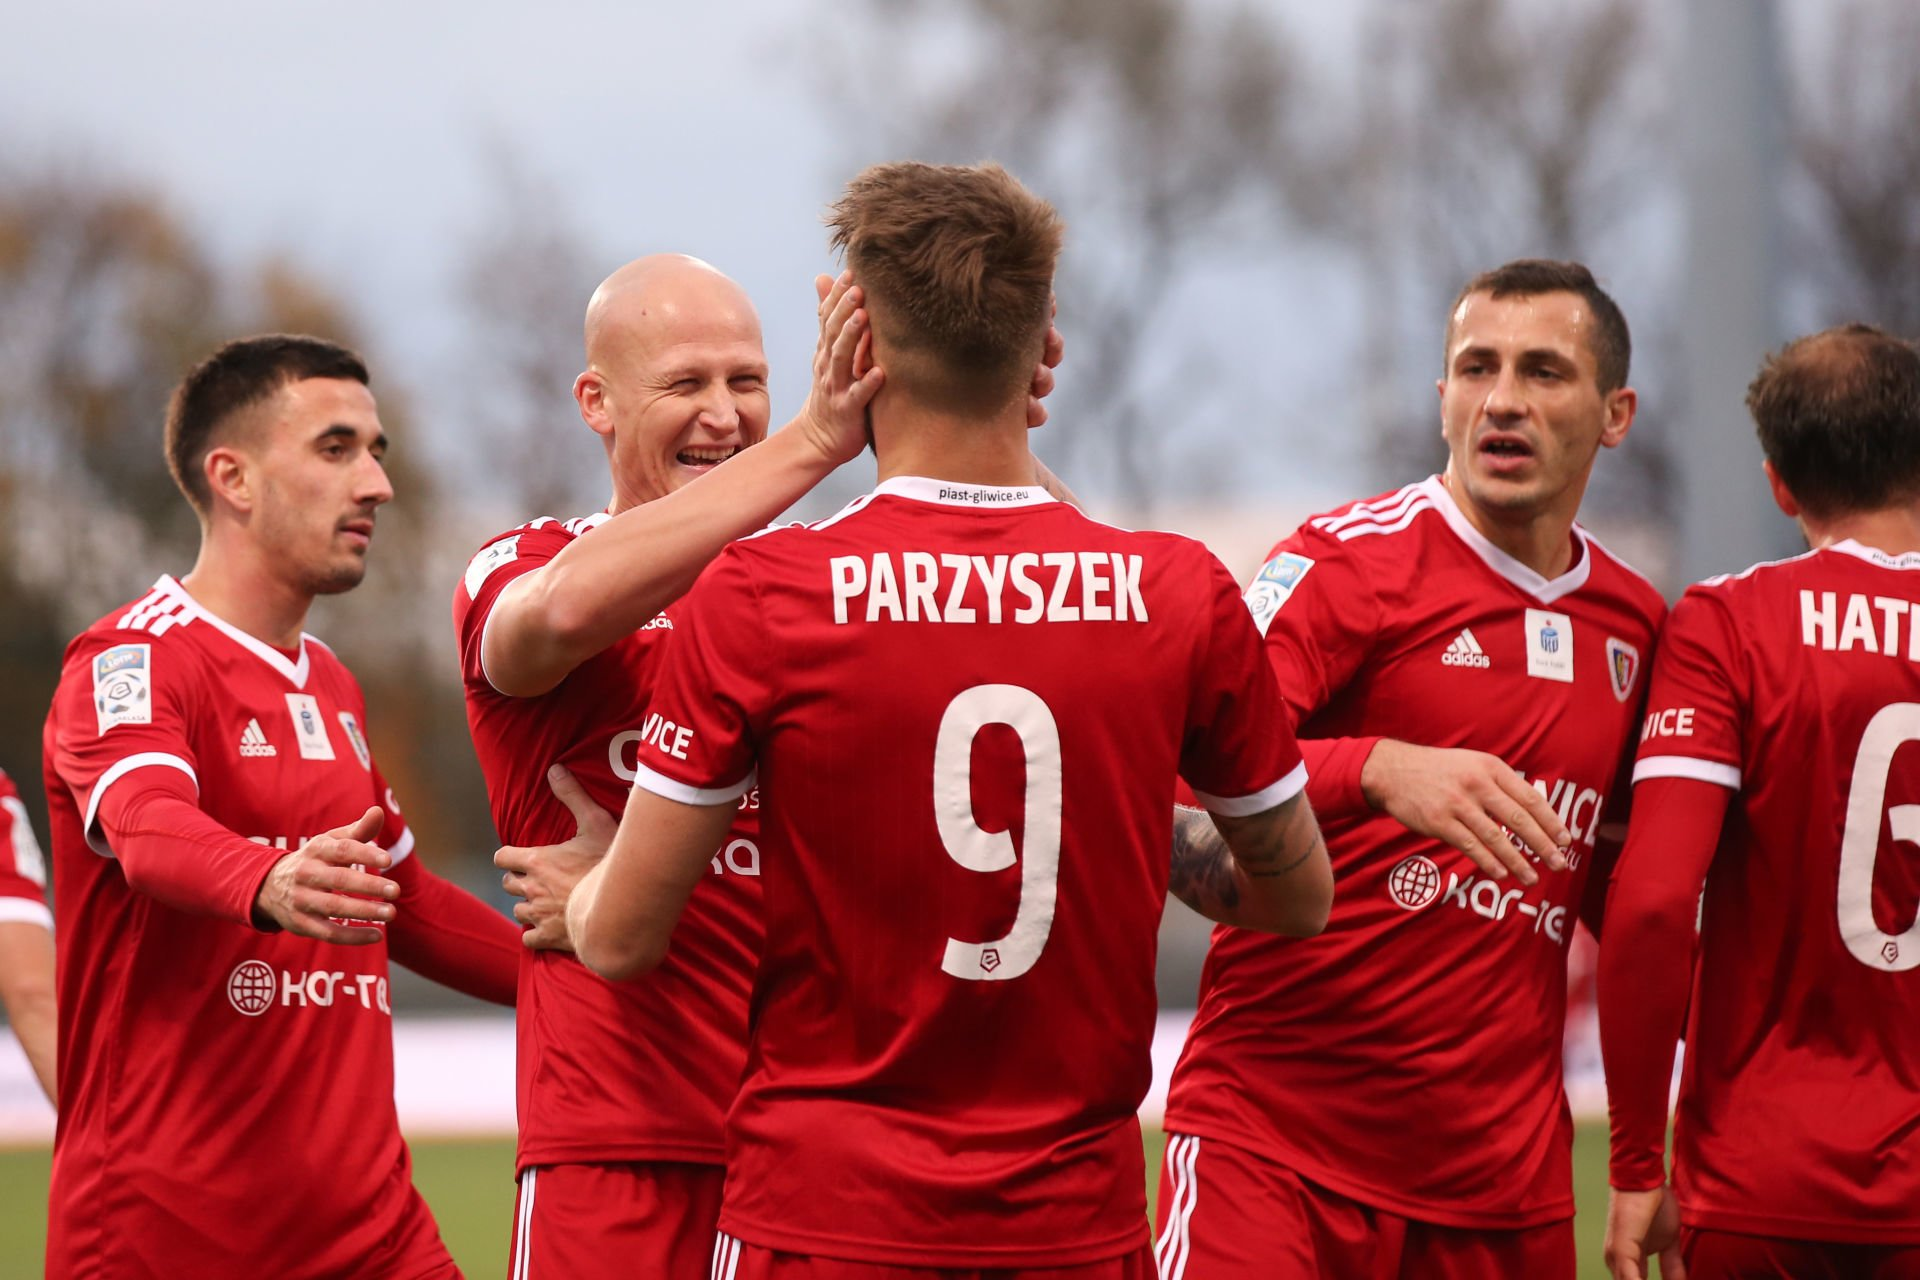 PLOCK 27.10.2018 MECZ 13. KOLEJKA LOTTO EKSTRAKLASA SEZON 2018/19 --- POLISH FOOTBALL TOP LEAGUE MATCH: WISLA PLOCK - PIAST GLIWICE ALEKSANDAR SEDLAR JAKUB CZERWINSKI PIOTR PARZYSZEK TOMASZ JODLOWIEC FOT. PIOTR KUCZA/ 400mm.pl